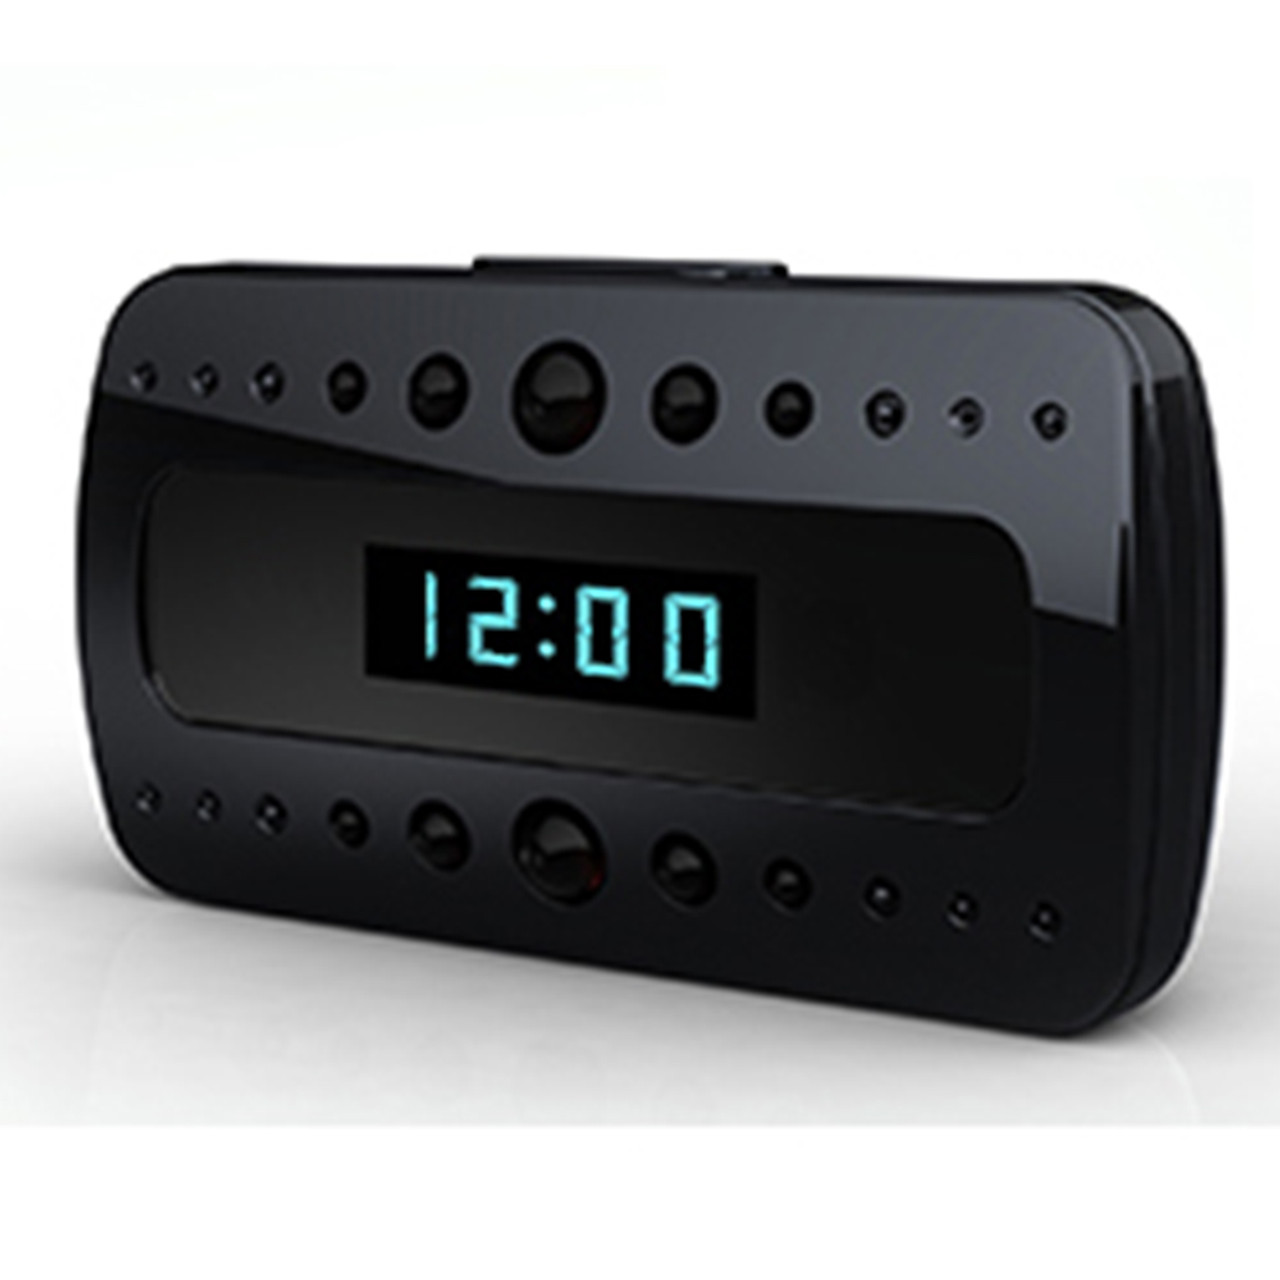 Nanny cams in clocks knowyournanny wi fi nanny cam hidden alarm clock w wifi dvr and night vision 1920x1080 amipublicfo Images